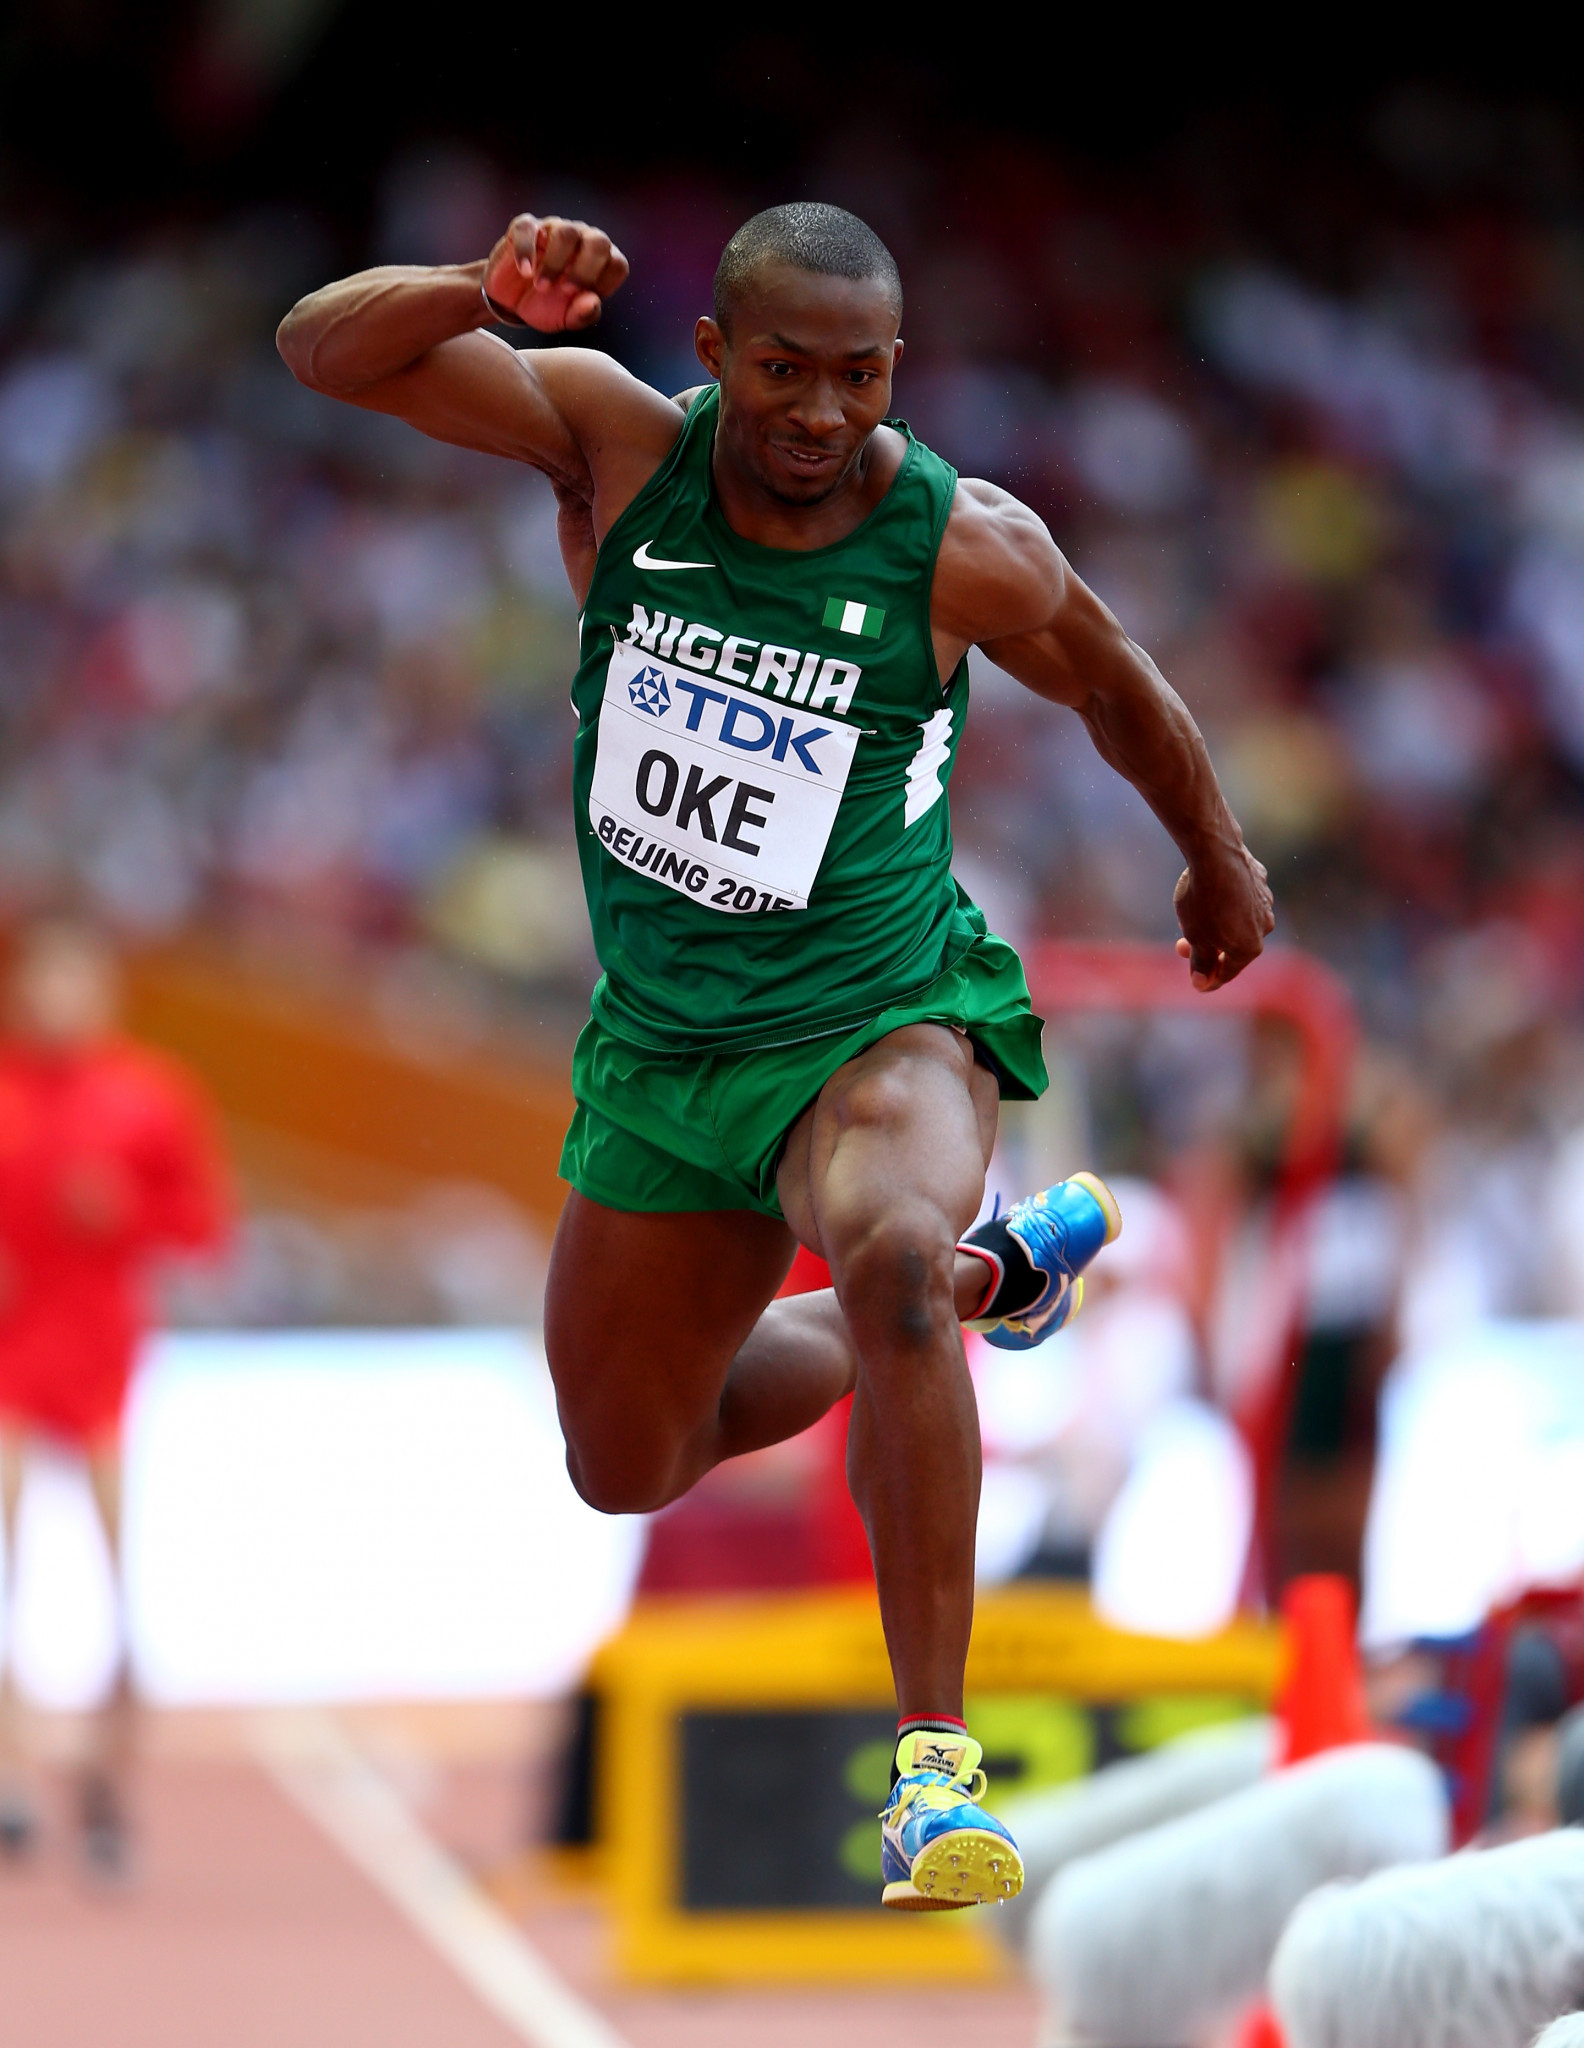 Tosin Oke of Nigeria won the men's triple jump at the 2015 African Games ©Getty Images